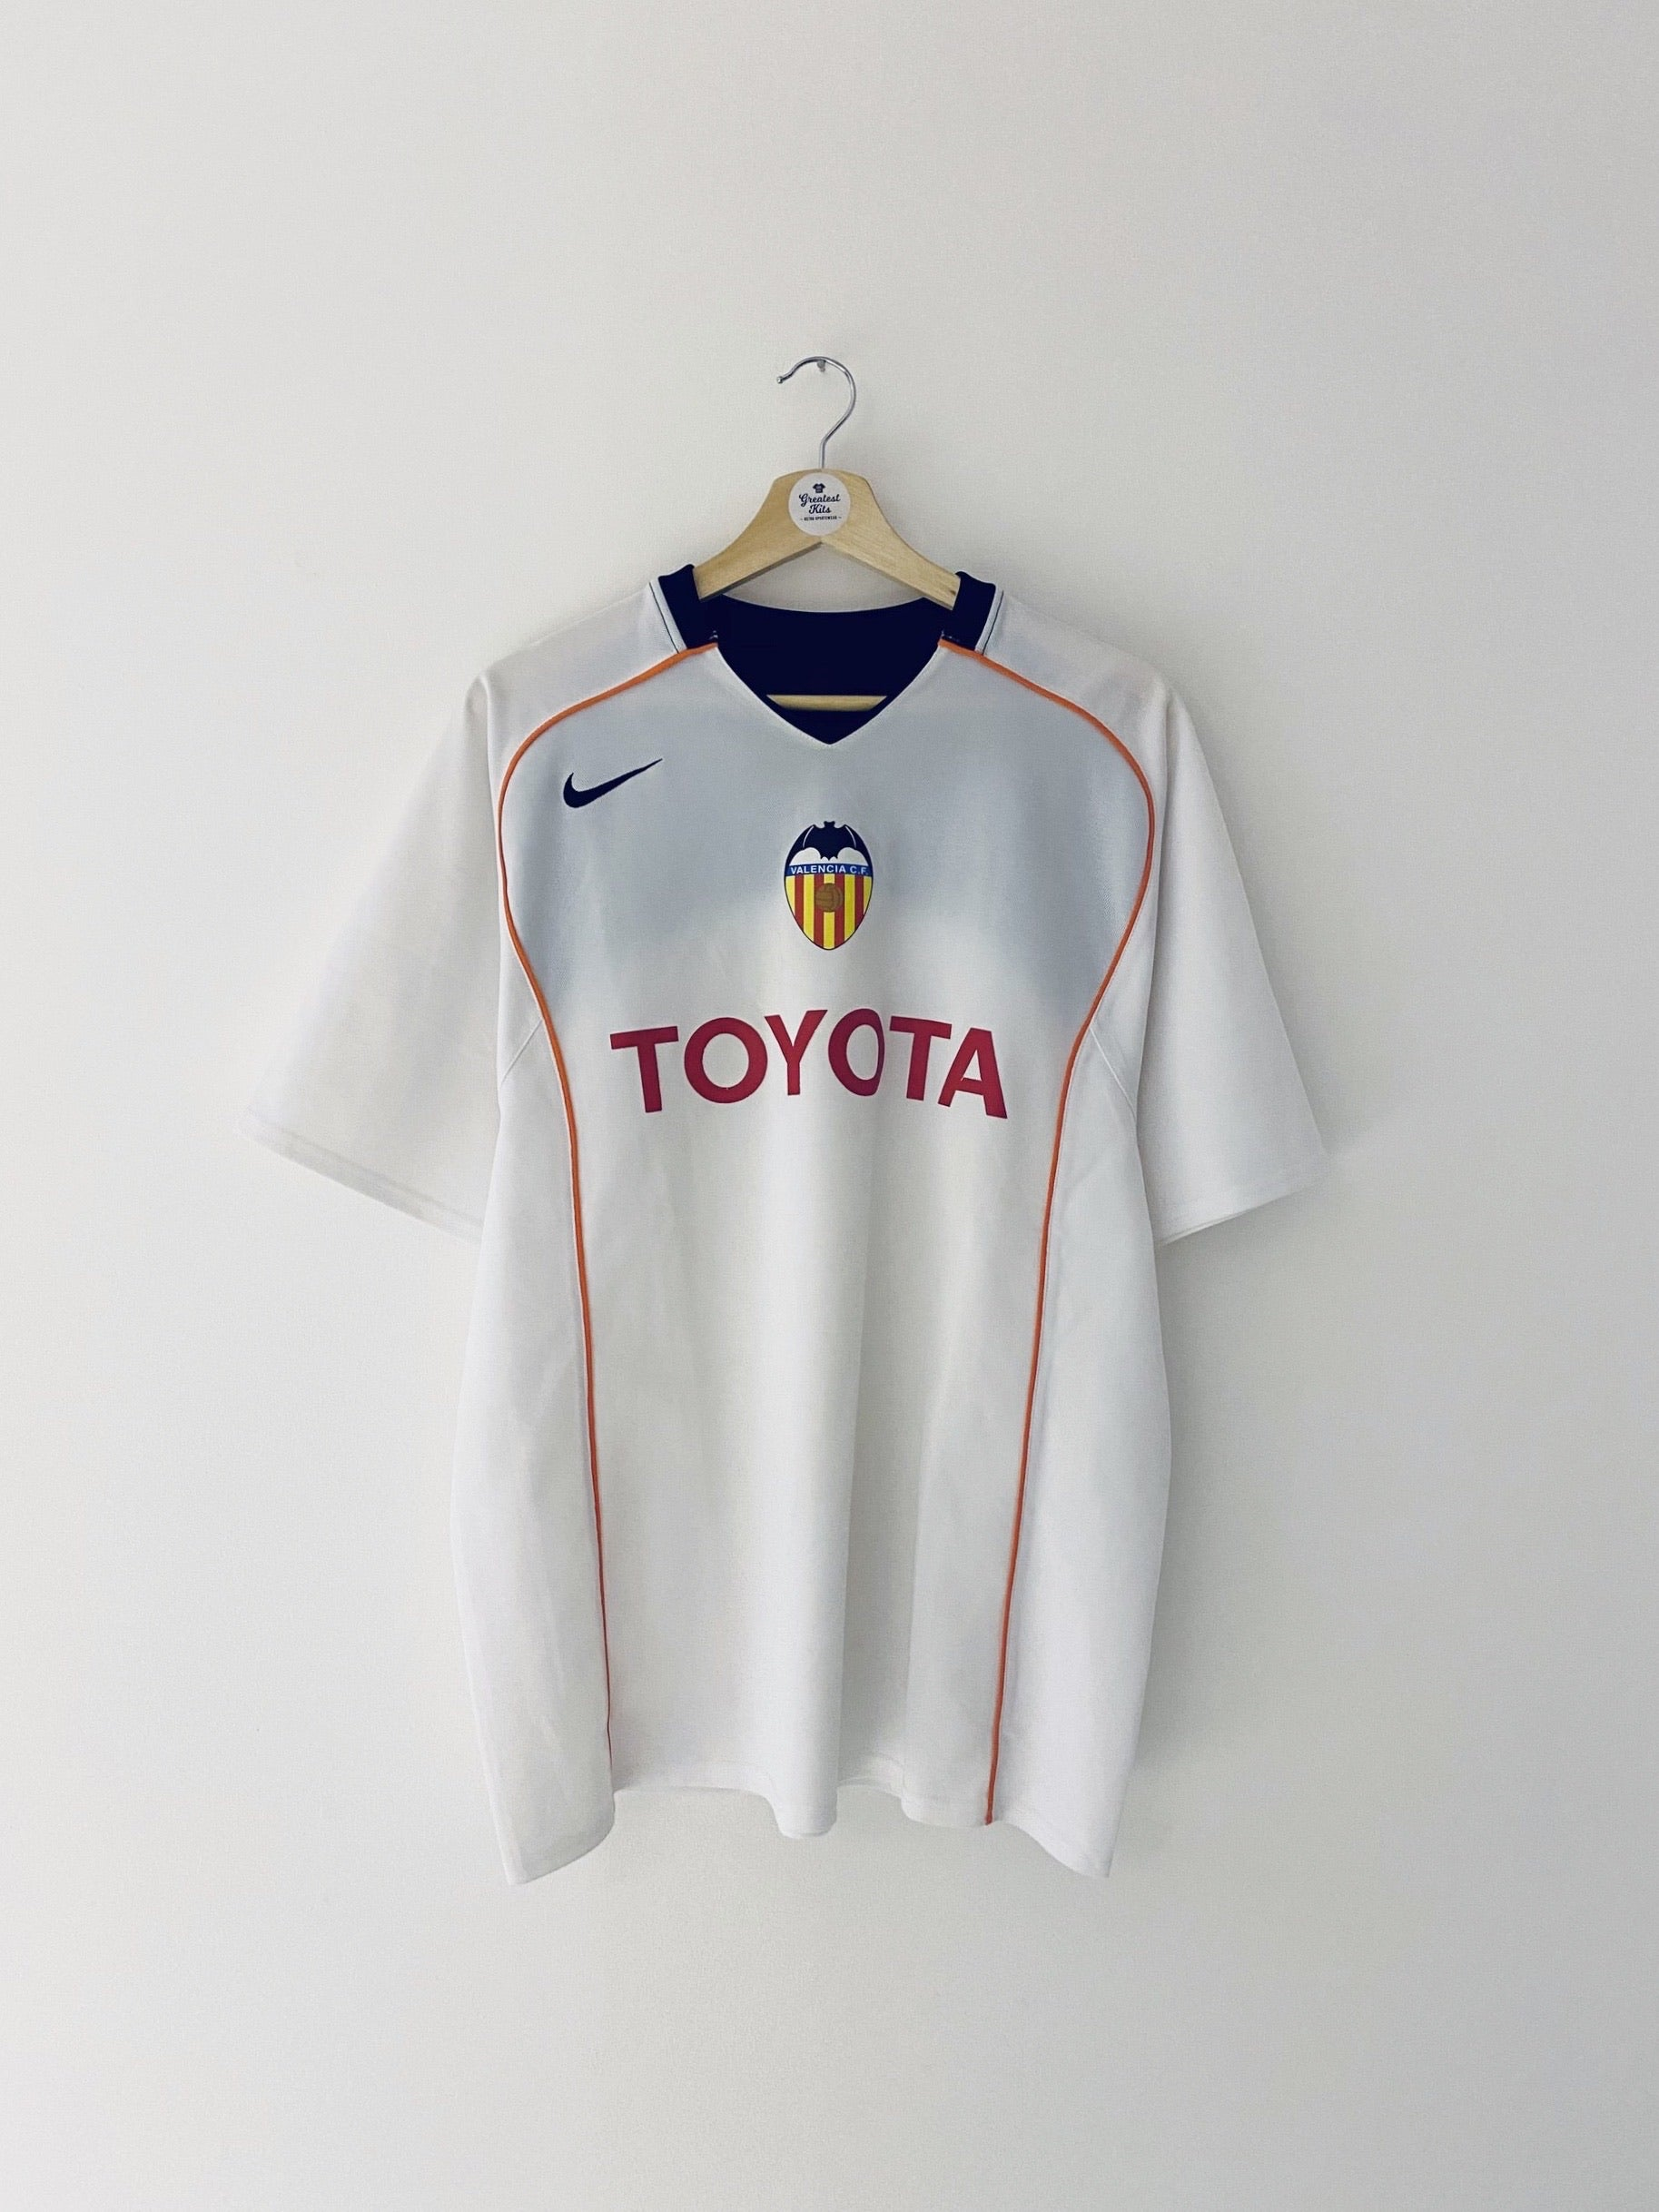 2004/05 Valencia Home Shirt (M) 8.5/10